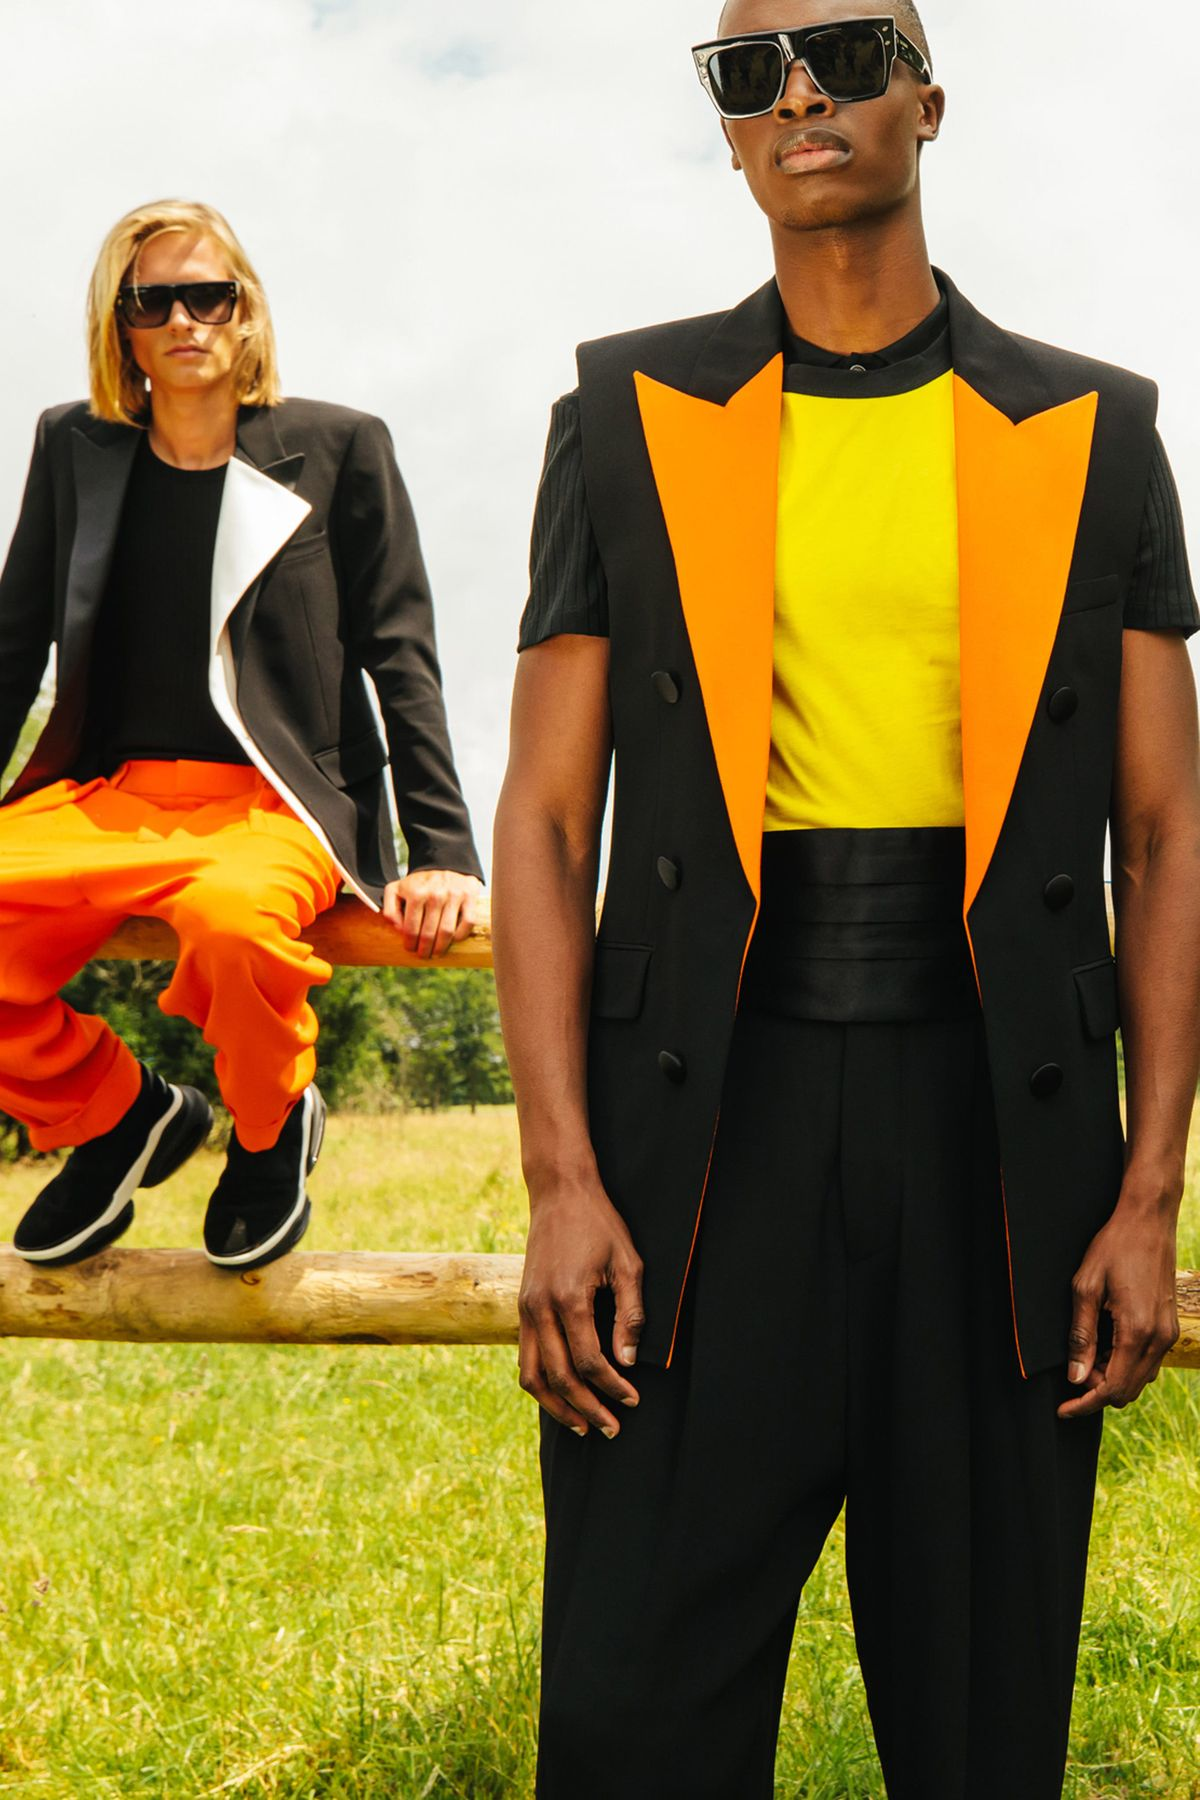 Balmain Menswear Resort 2021 The Zoom Collection